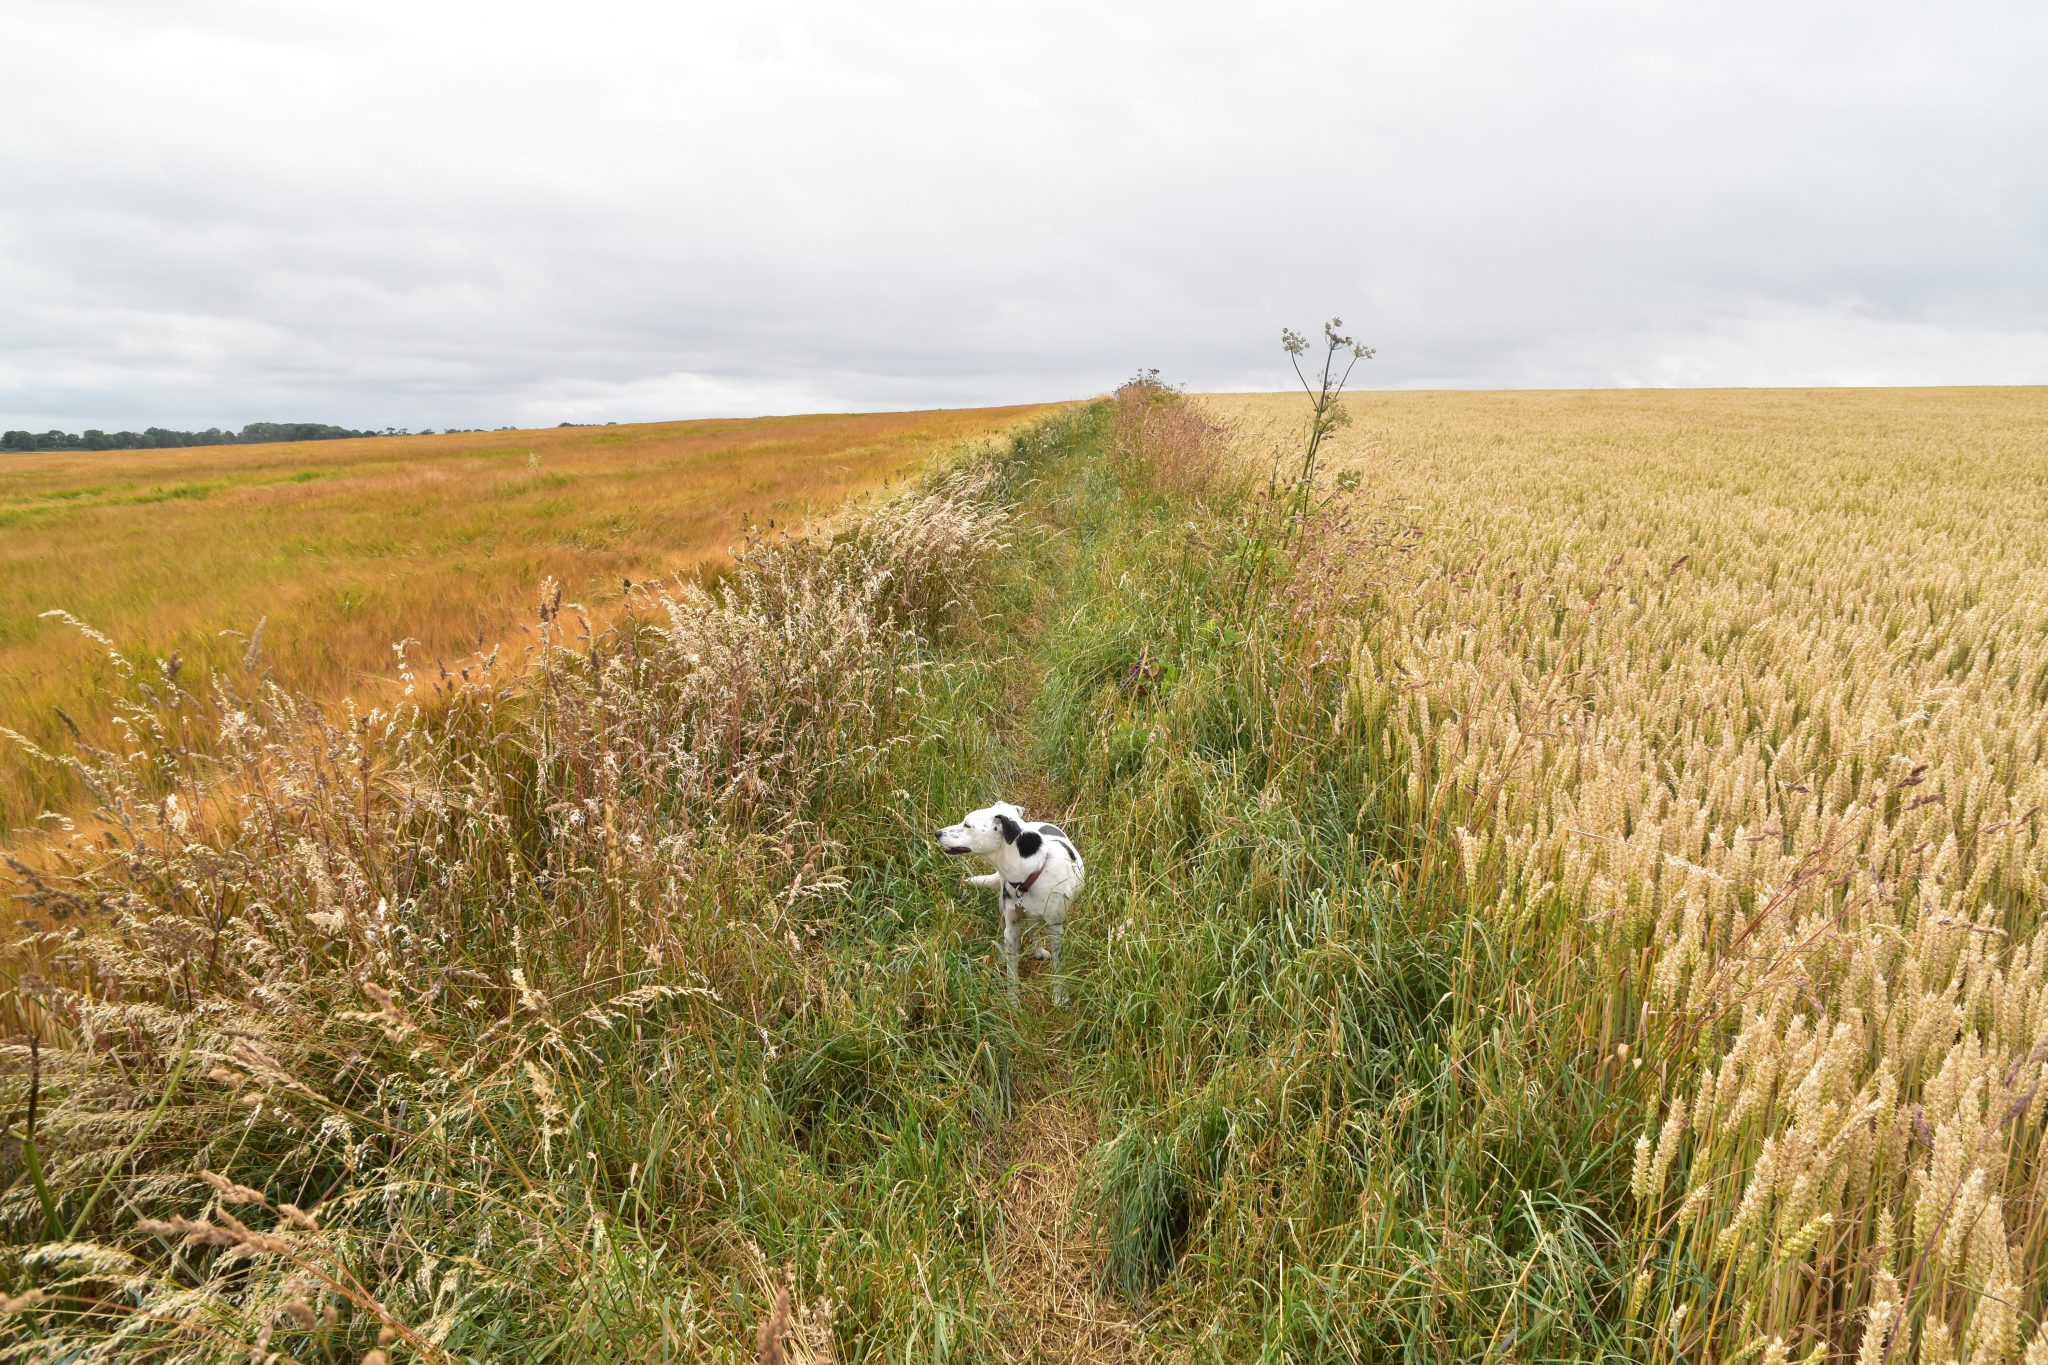 Daisy the dog strolls through fields of wheat and barley on the Yorkshire Wolds WAy